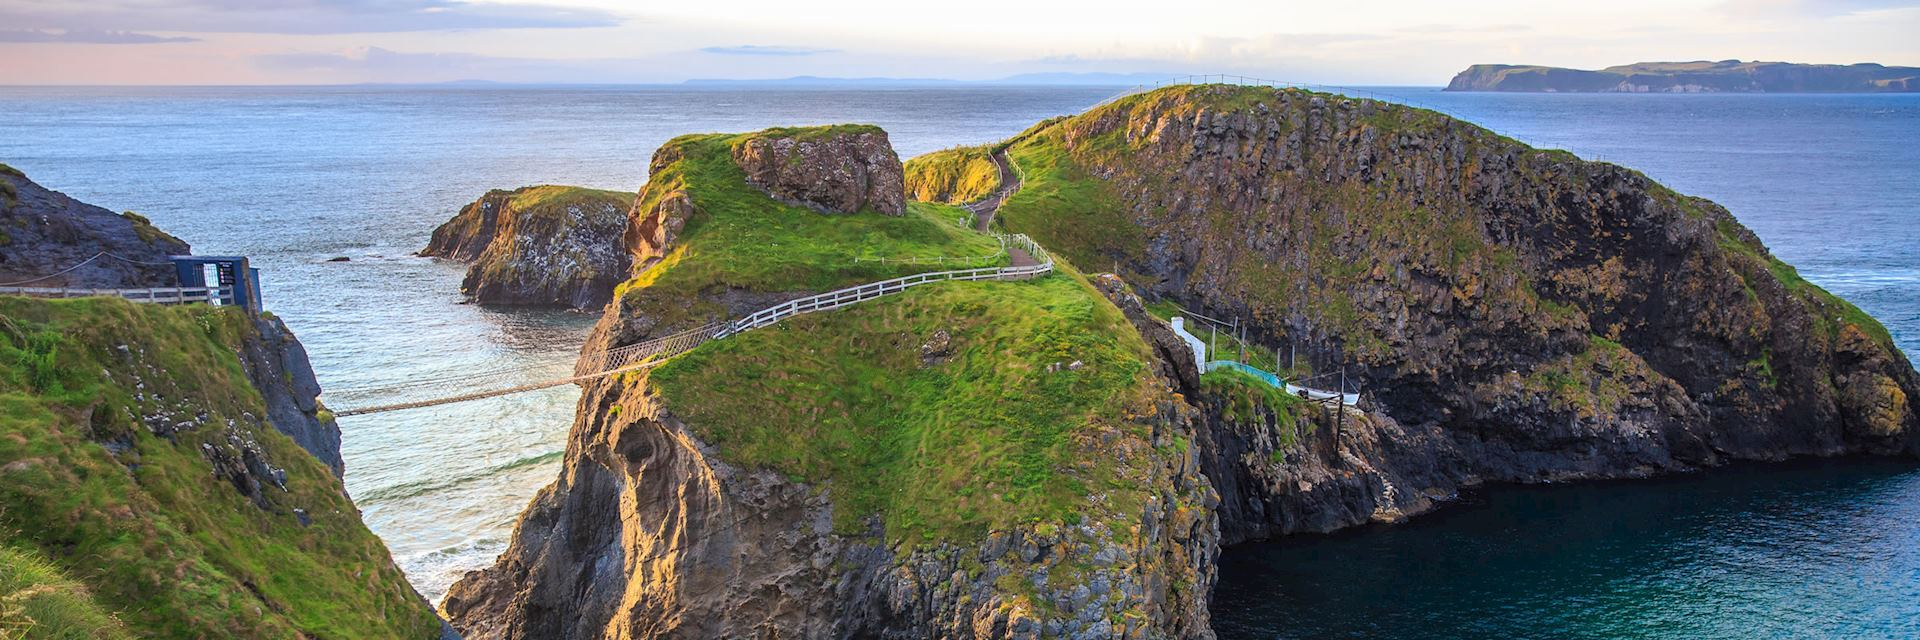 Carrick-a-Rede Rope Bridge, near Ballintoy in County Antrim